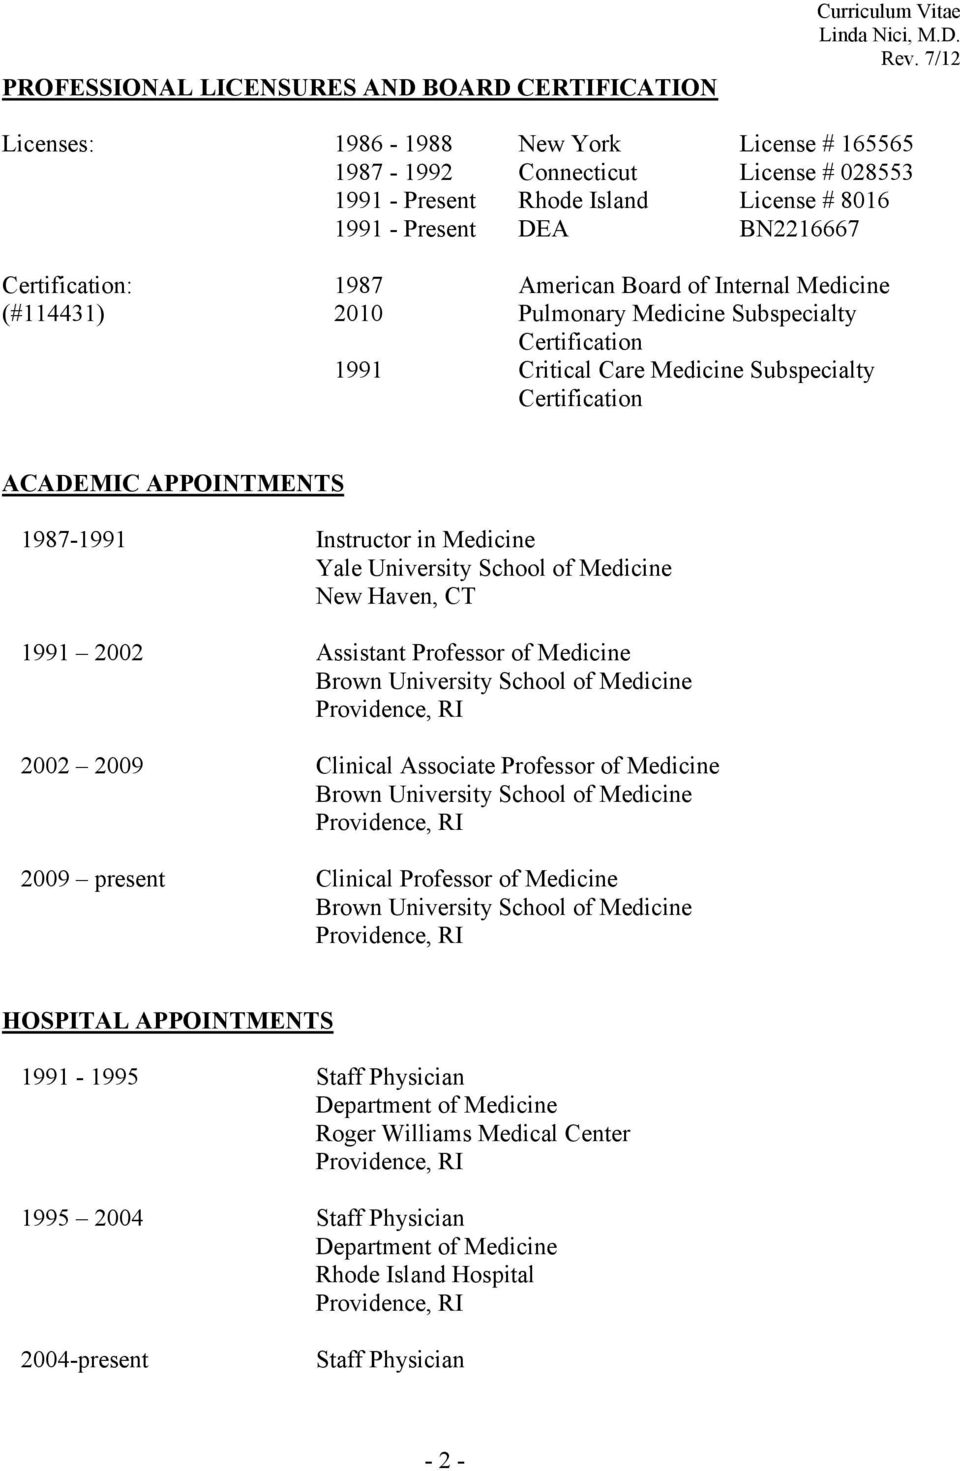 ACADEMIC APPOINTMENTS 1987-1991 Instructor in Medicine Yale University School of Medicine New Haven, CT 1991 2002 Assistant Professor of Medicine Brown University School of Medicine Providence, RI